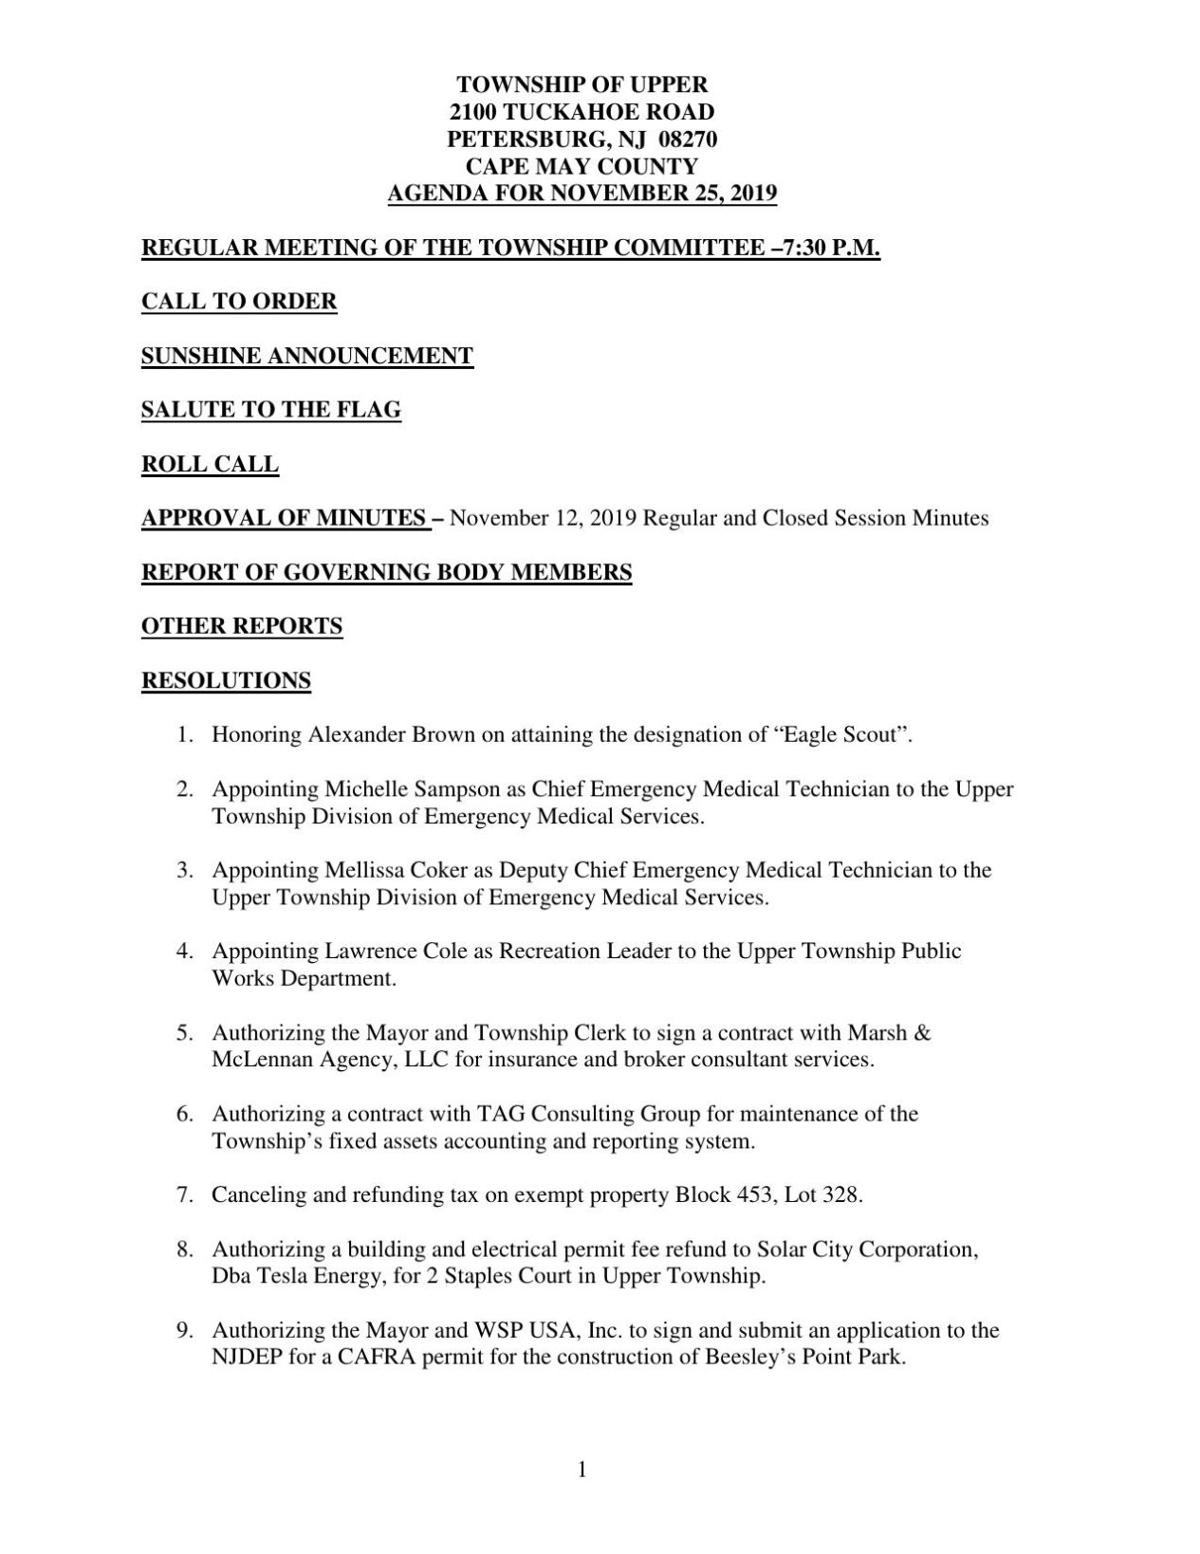 Upper Township Committee Agenda Nov. 25, 2019